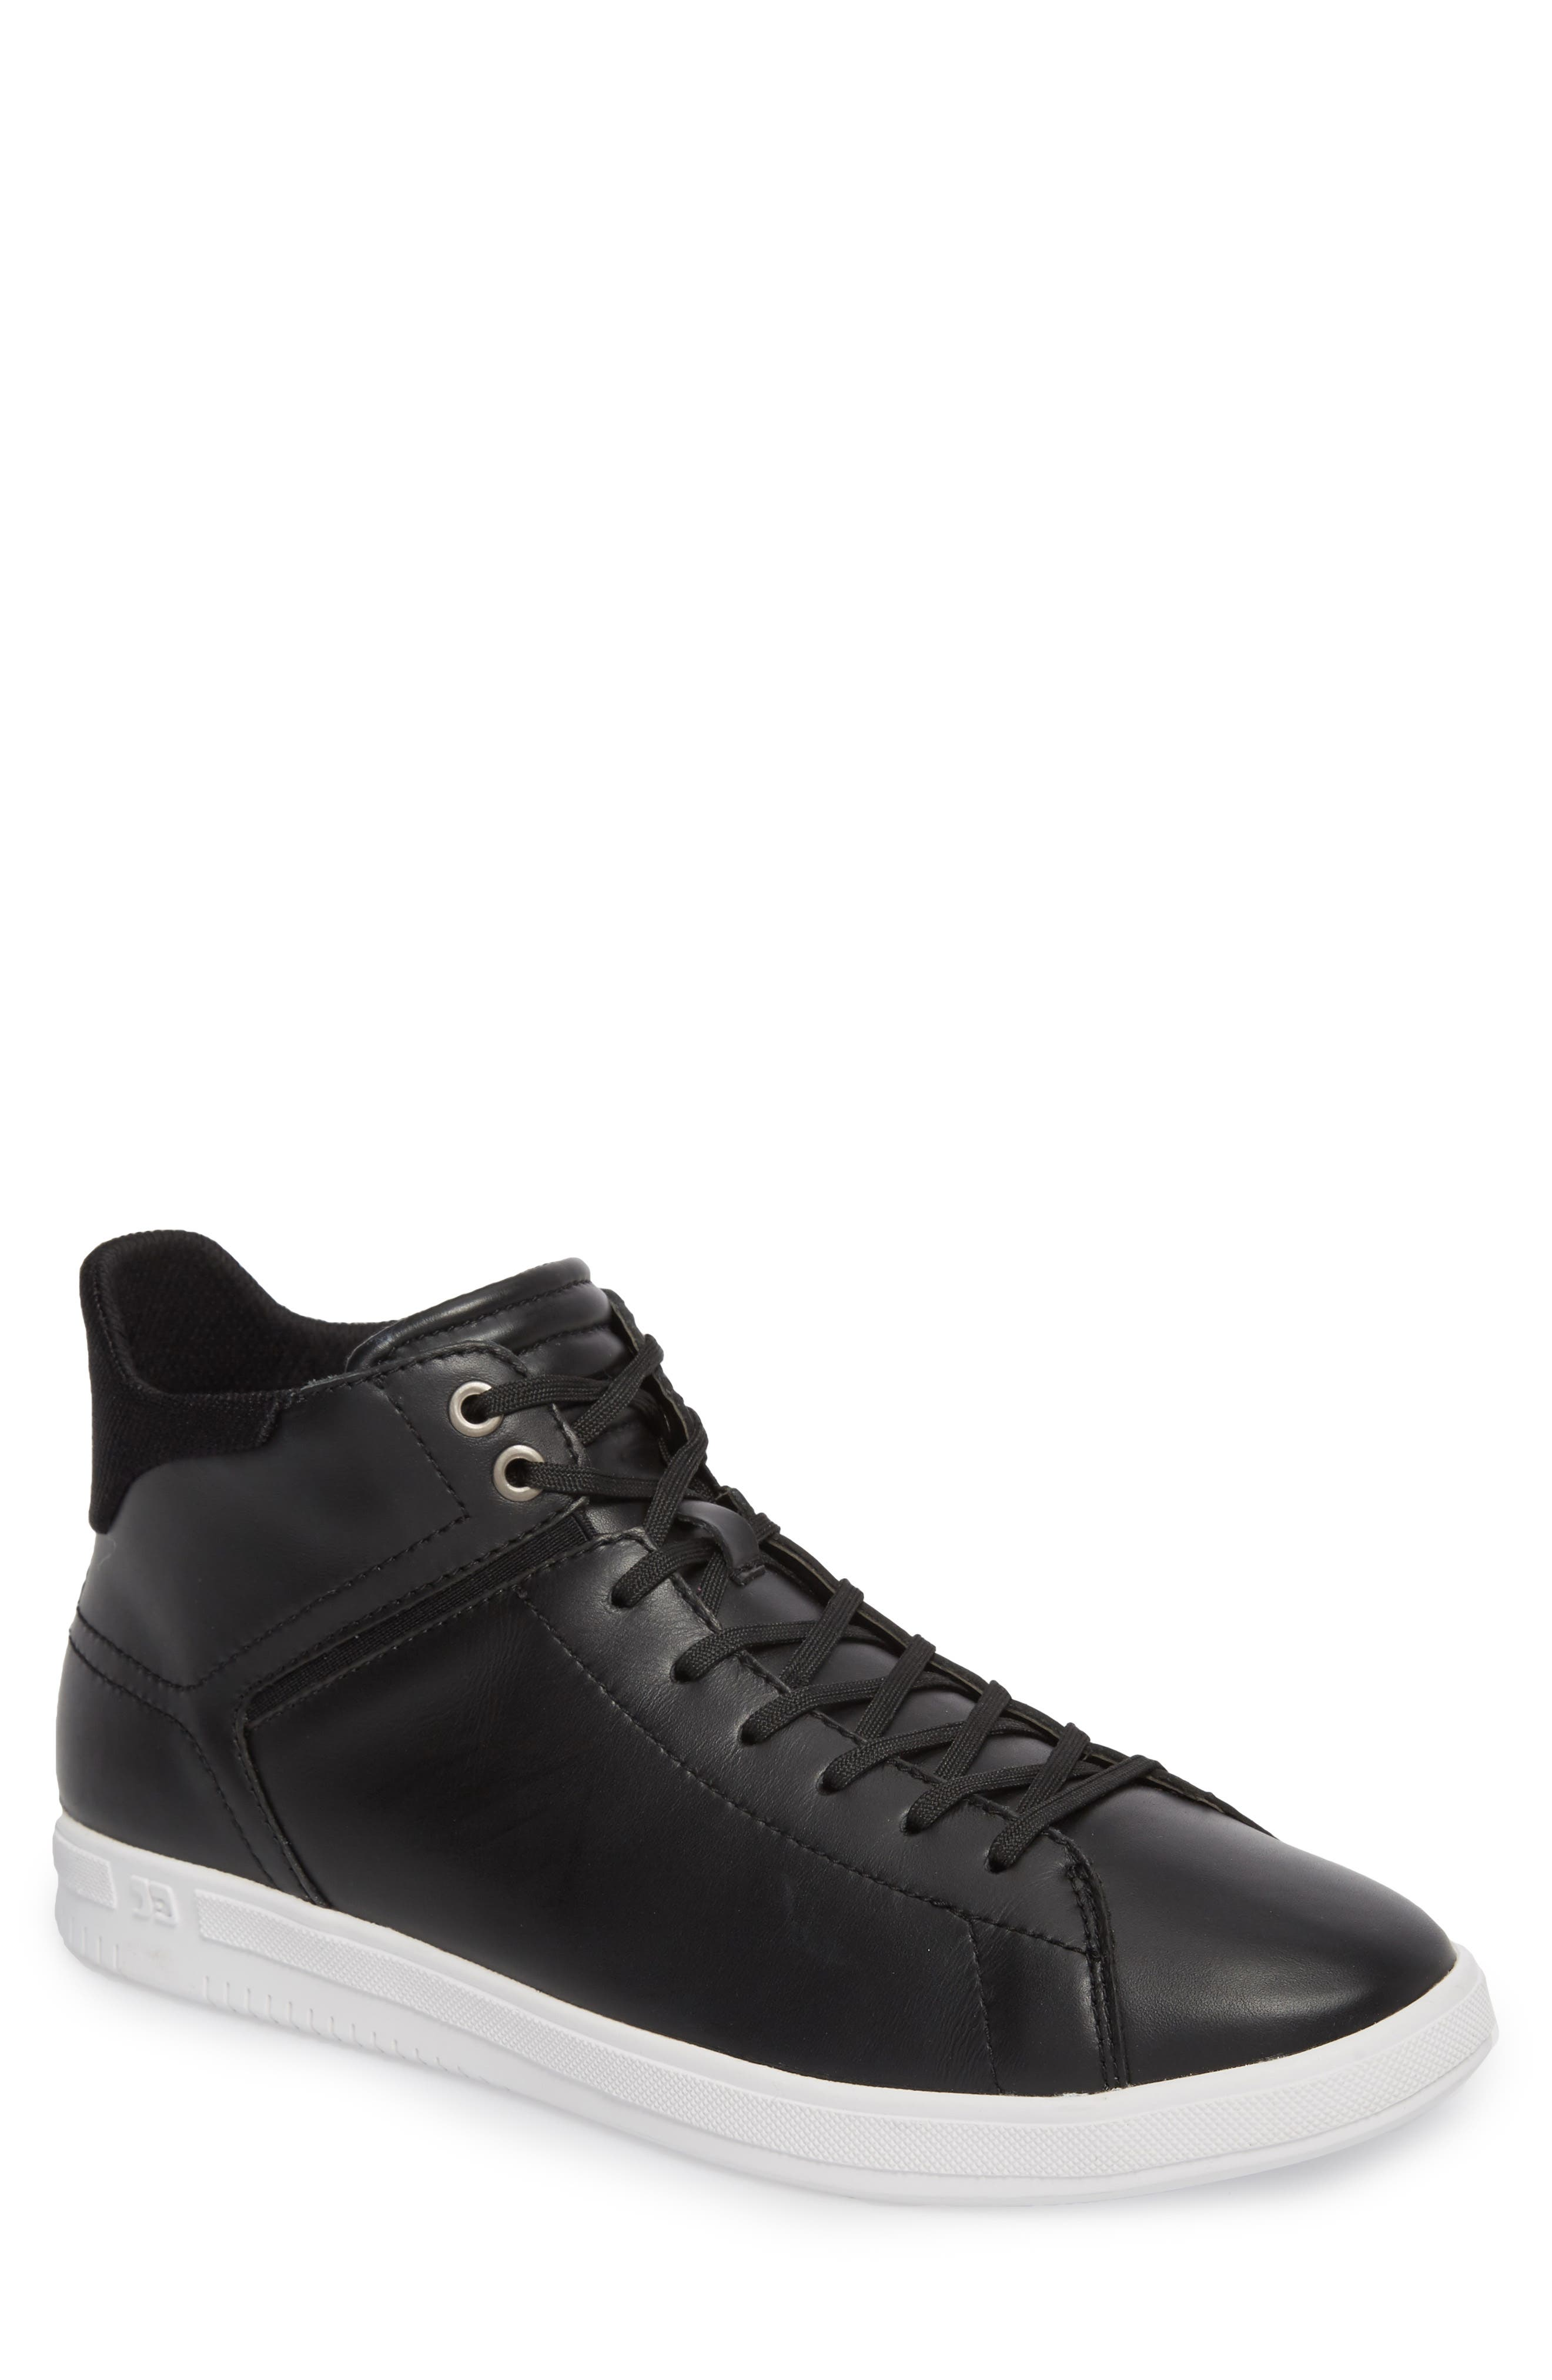 Joe Z Mid Top Sneaker,                             Main thumbnail 1, color,